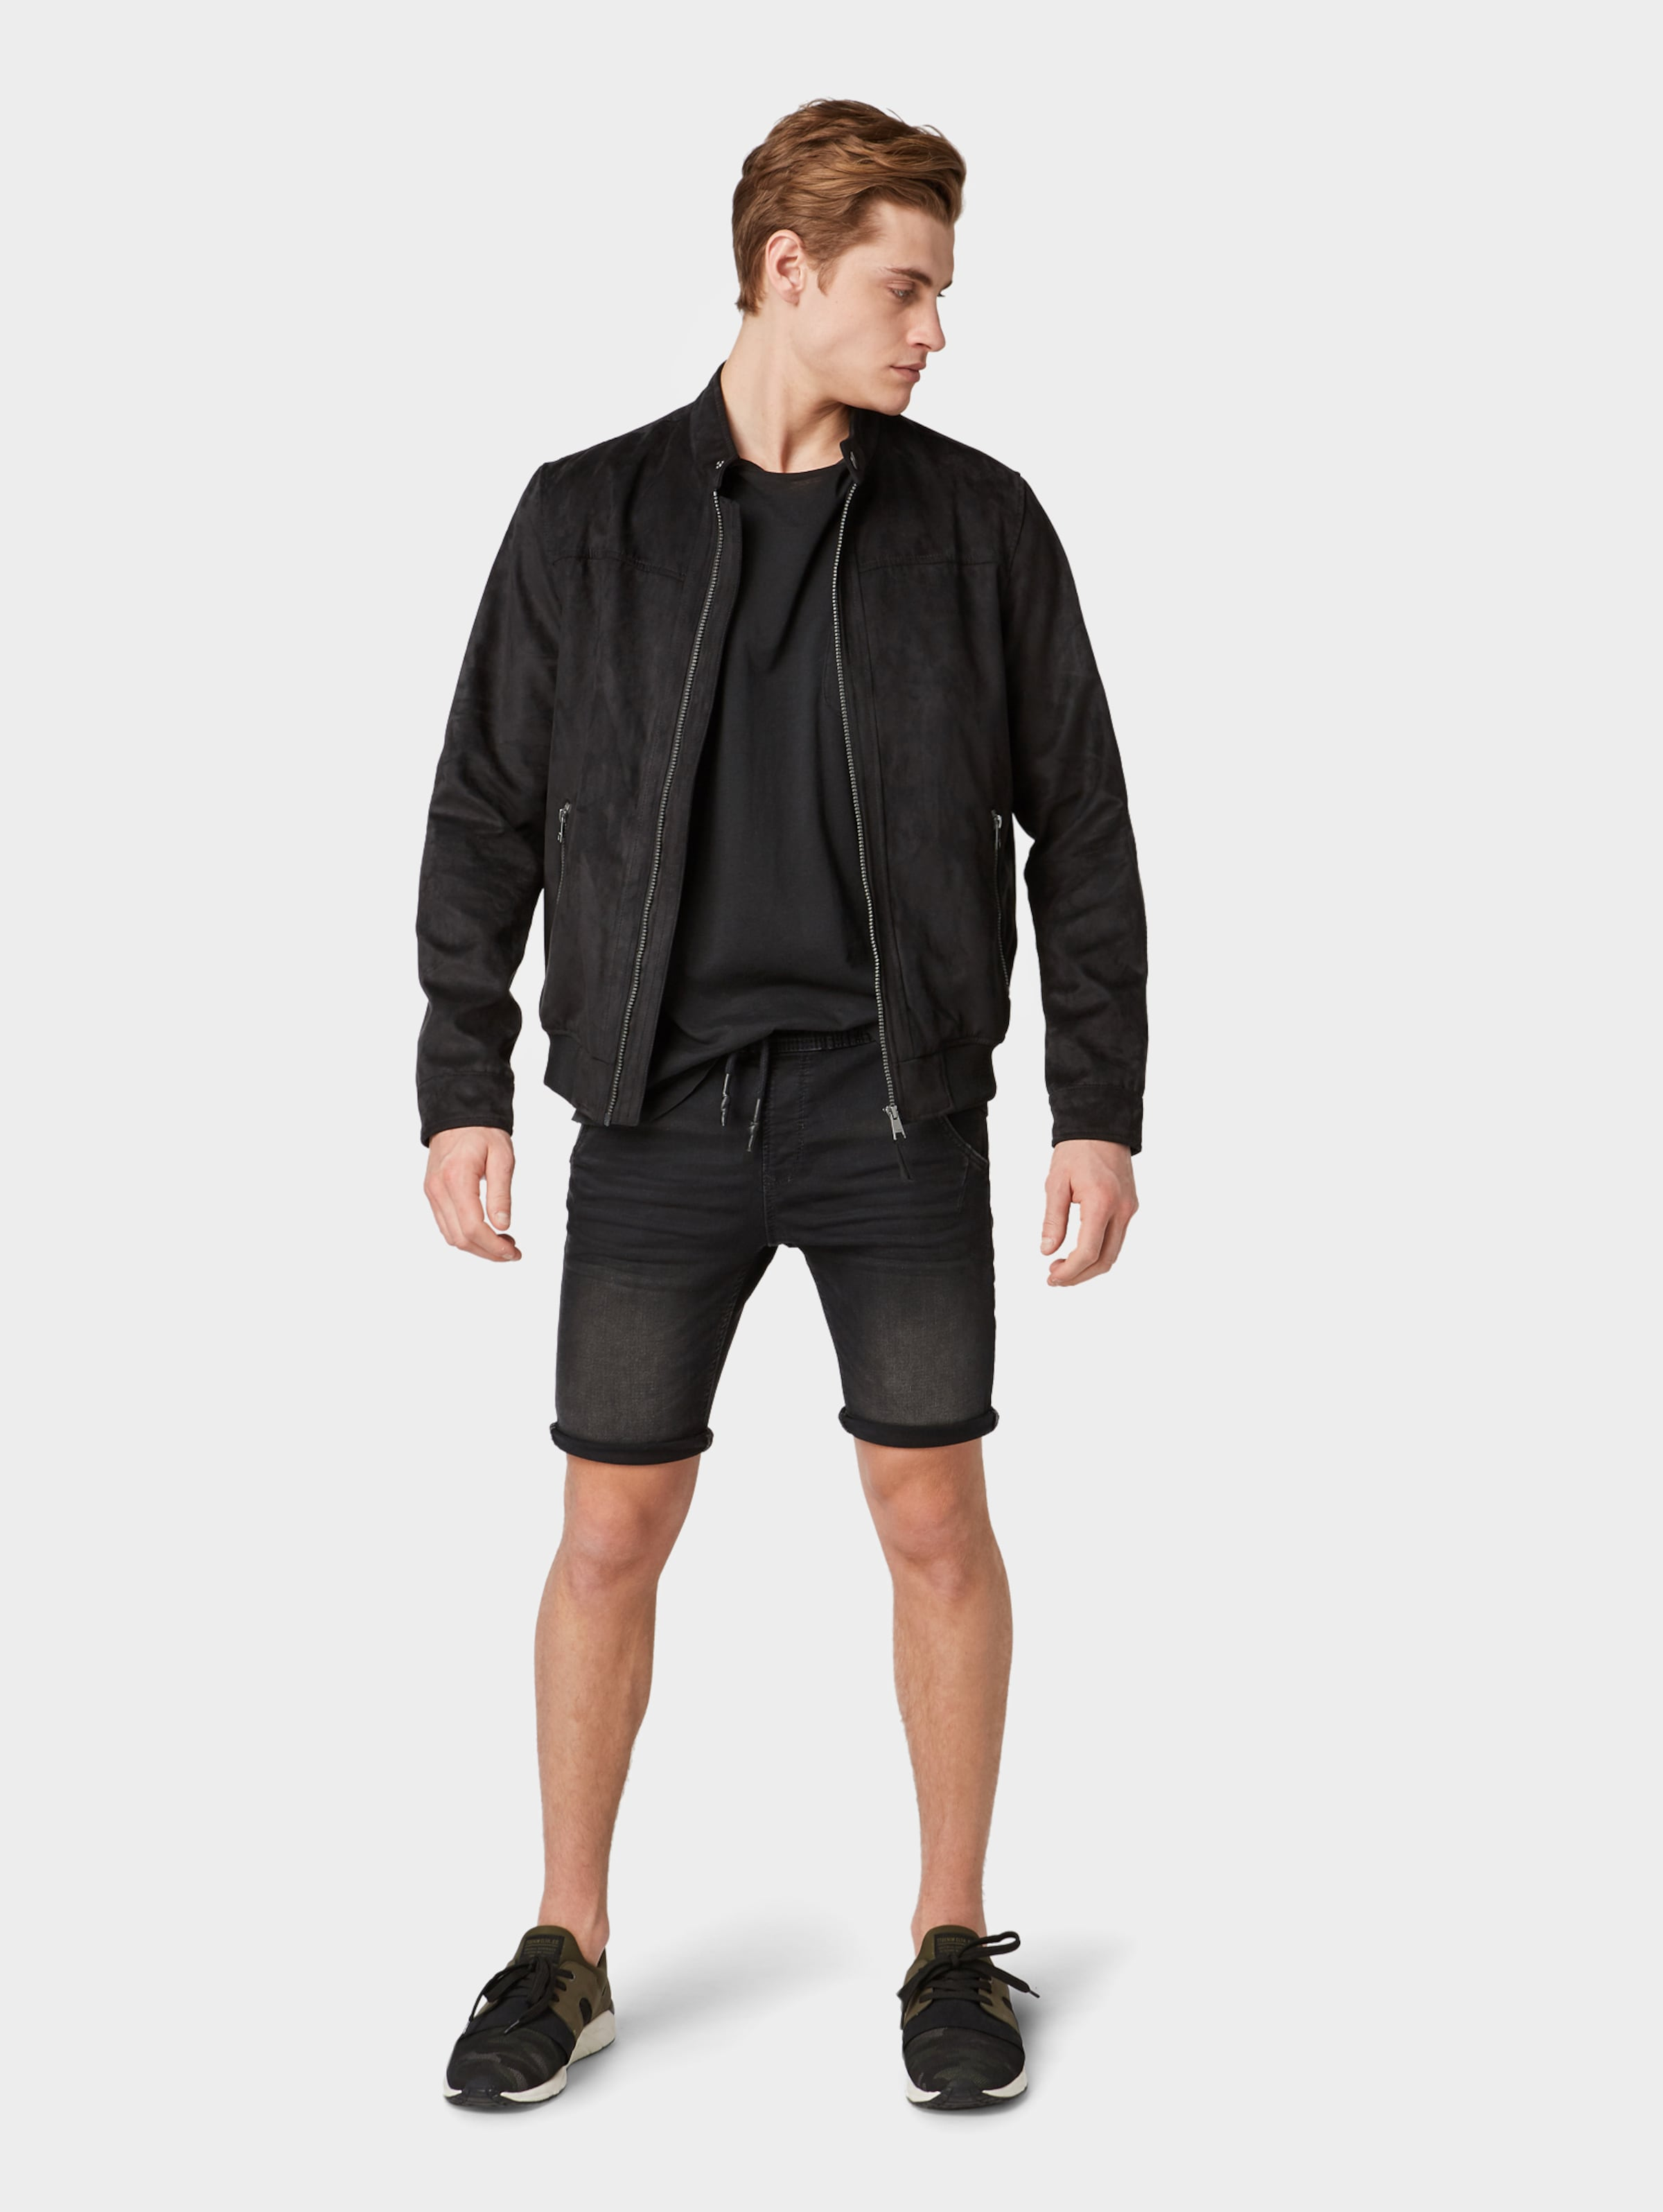 Chino Schwarz Tom In Shorts Denim Tailor NOvn0m8w